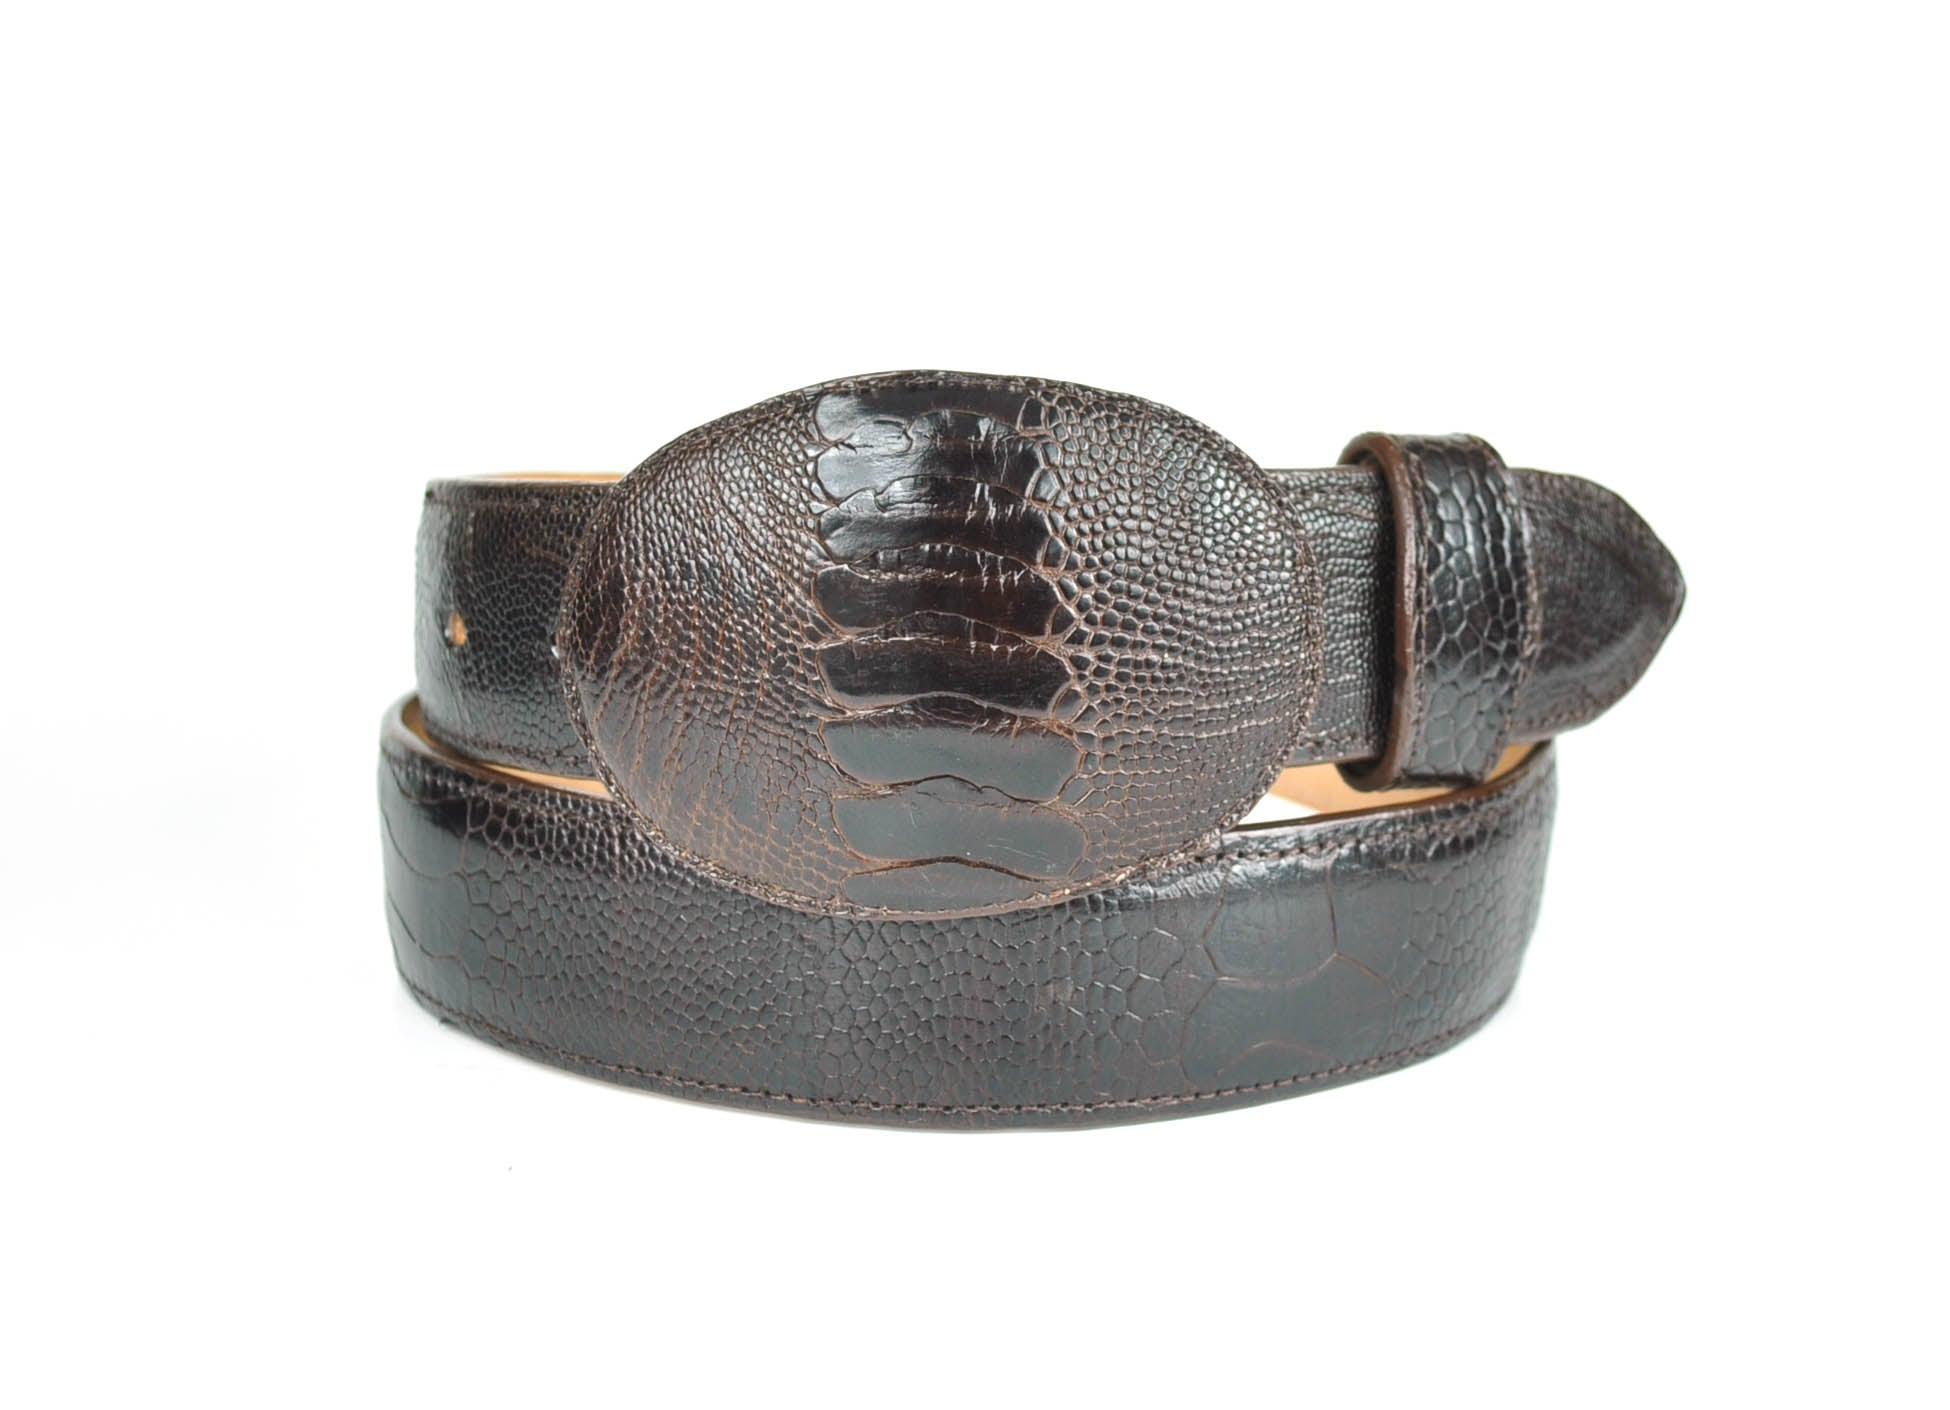 Gavel Ostrich Leg Western Belt -Brown